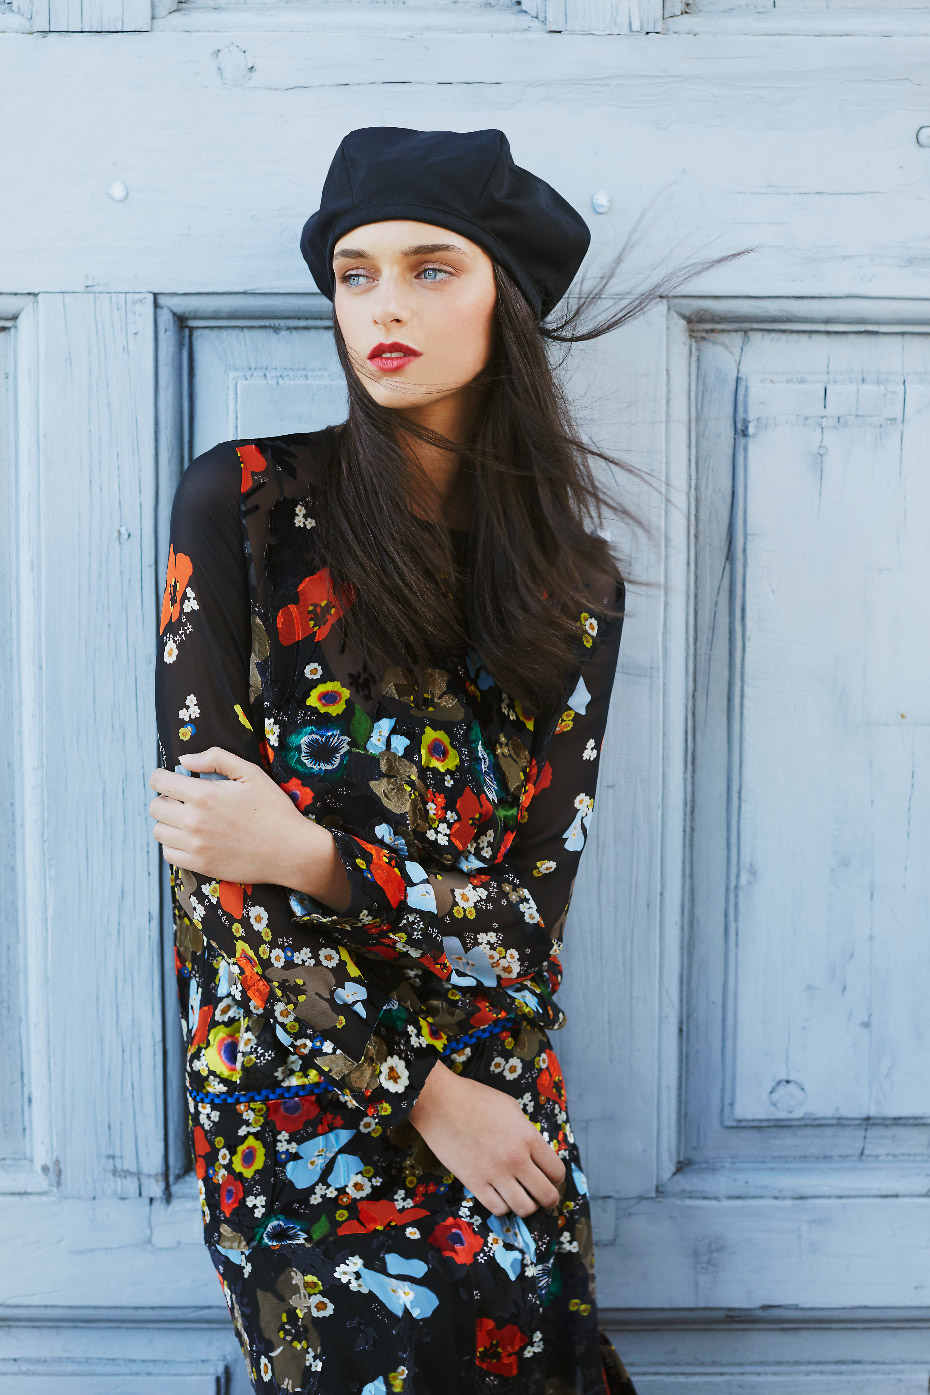 Stacey Van Berkel Photography I Carton House Travel Fashion Shoot I French Beret with Floral Dress I  Kildare, Ireland